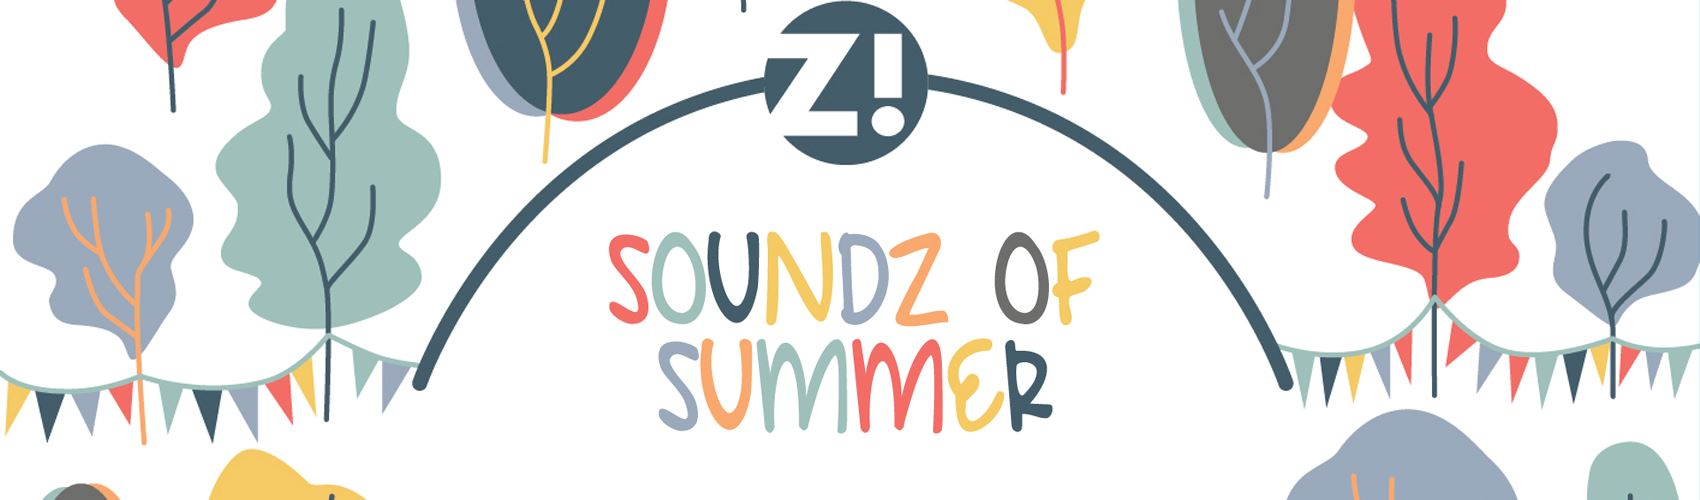 soundz of summer